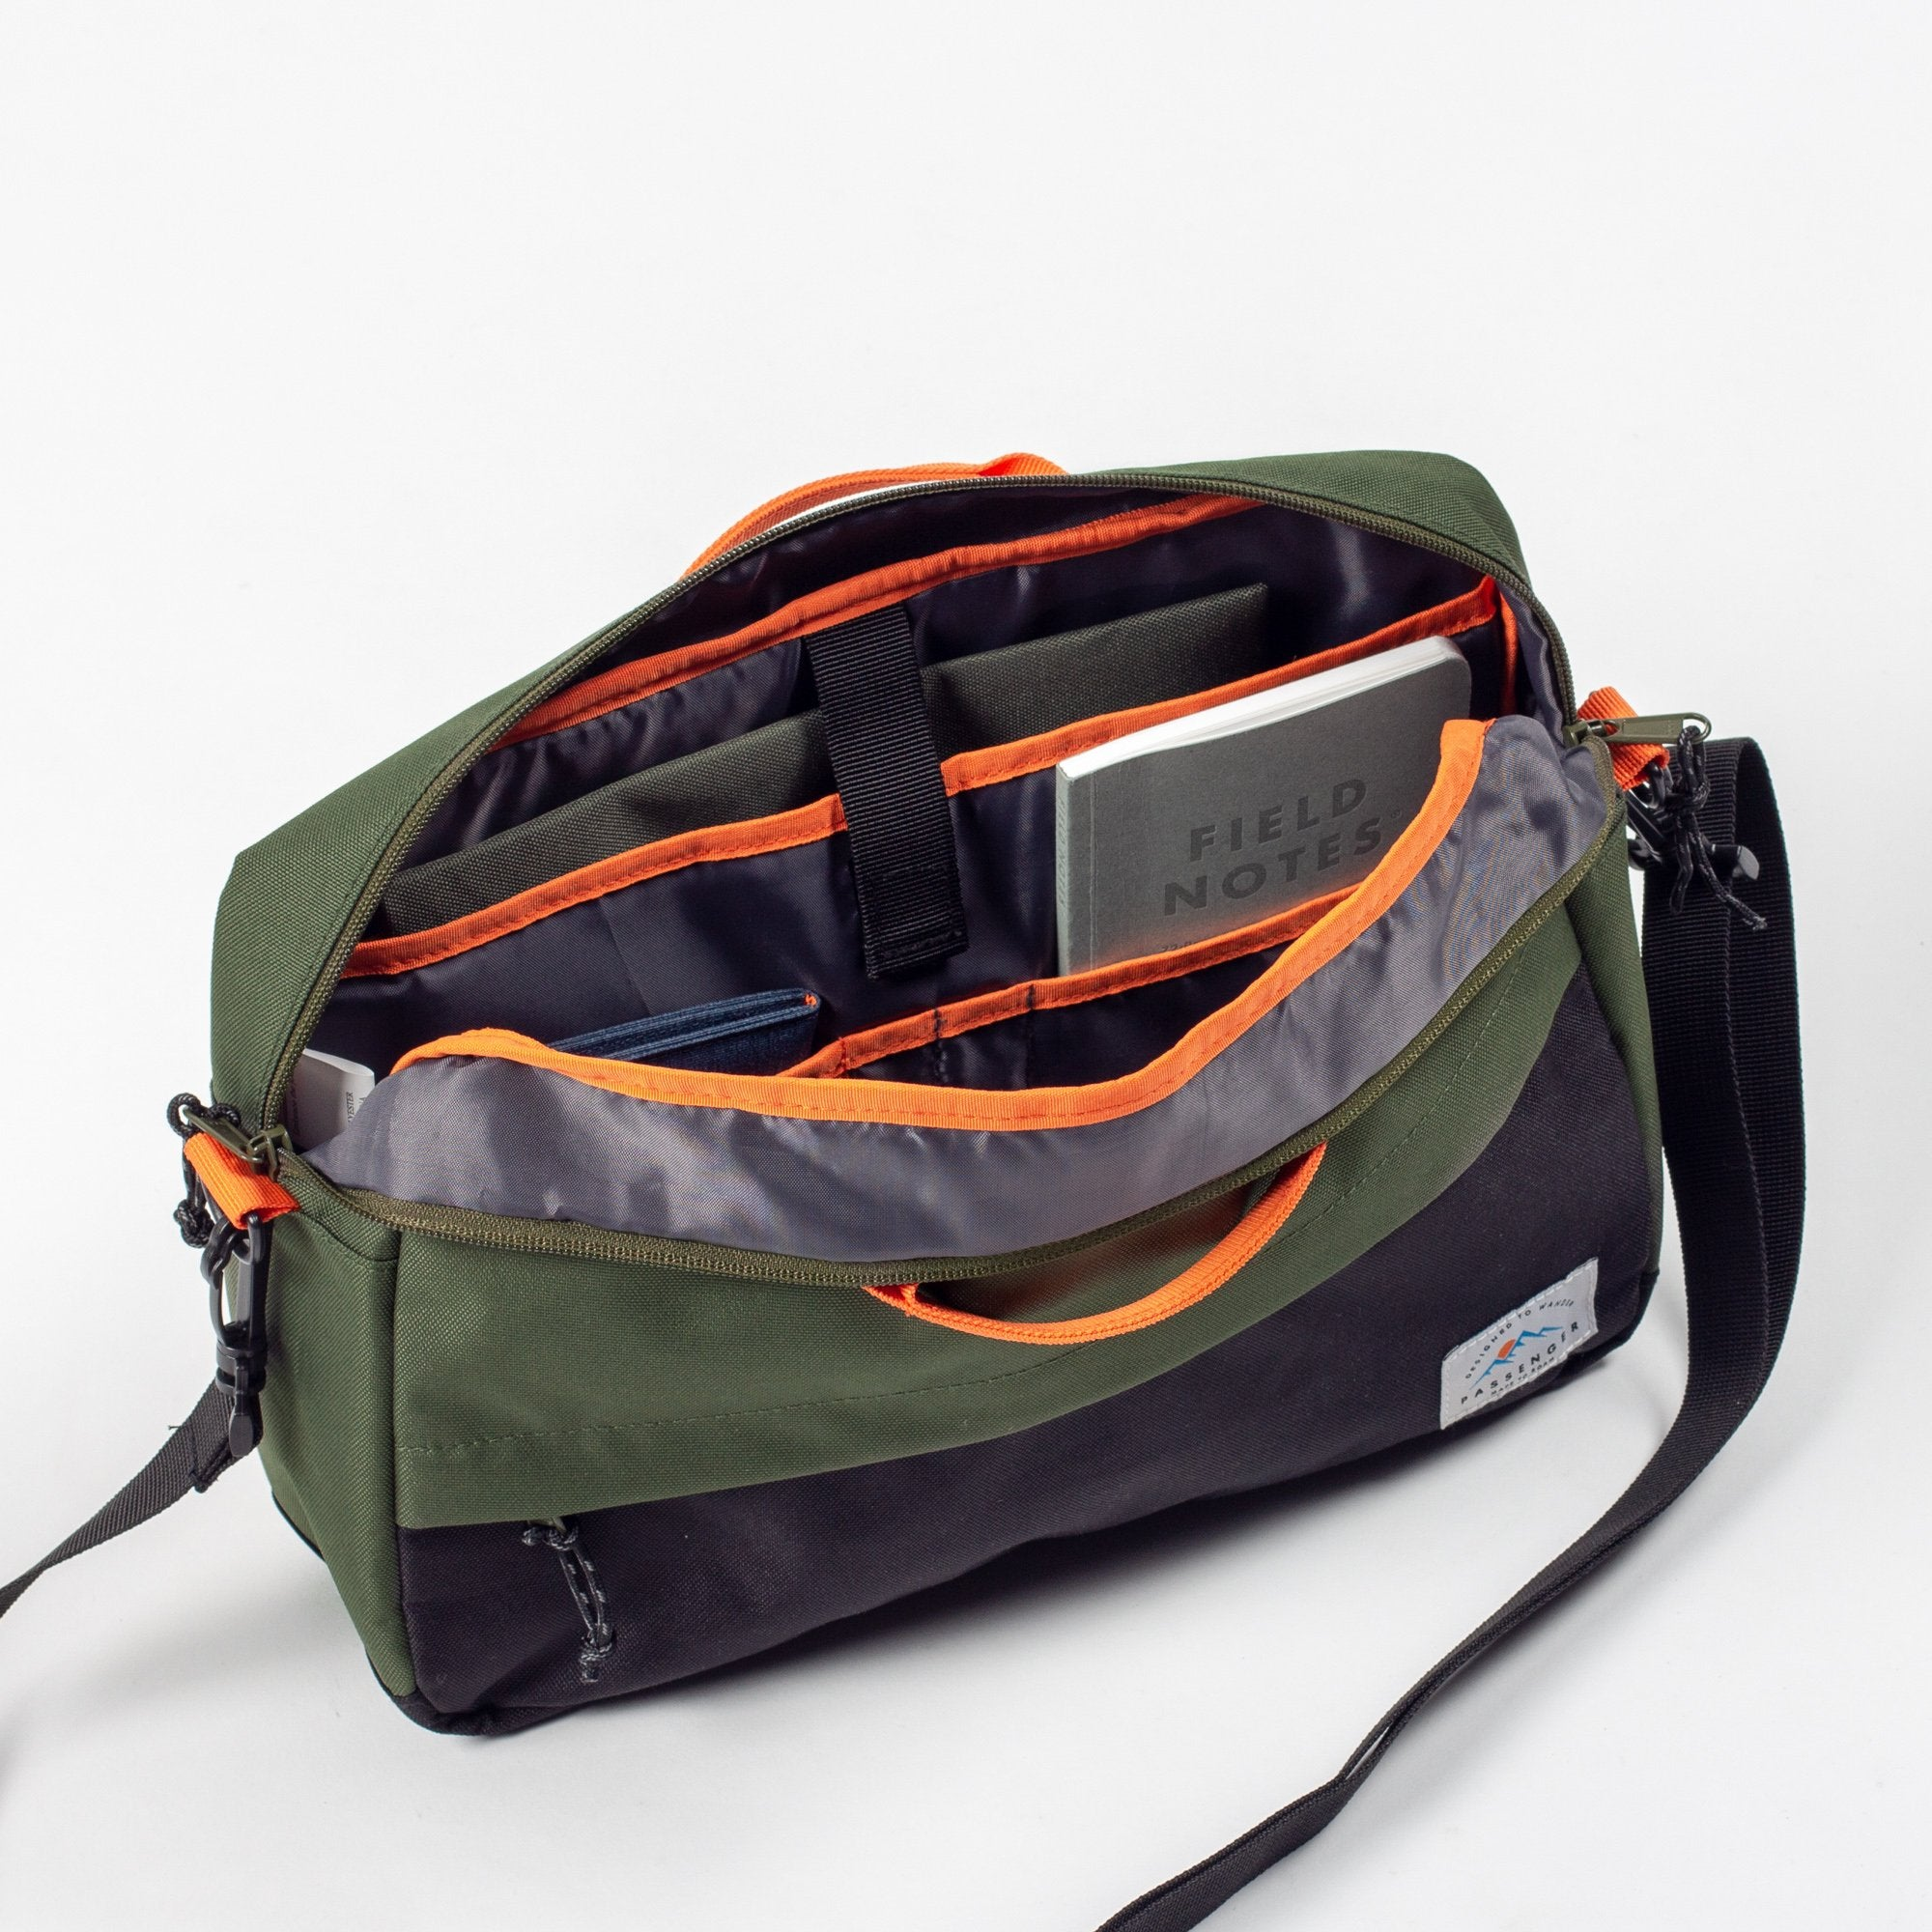 Ranger Essentials Pack - Olive/Black image 2